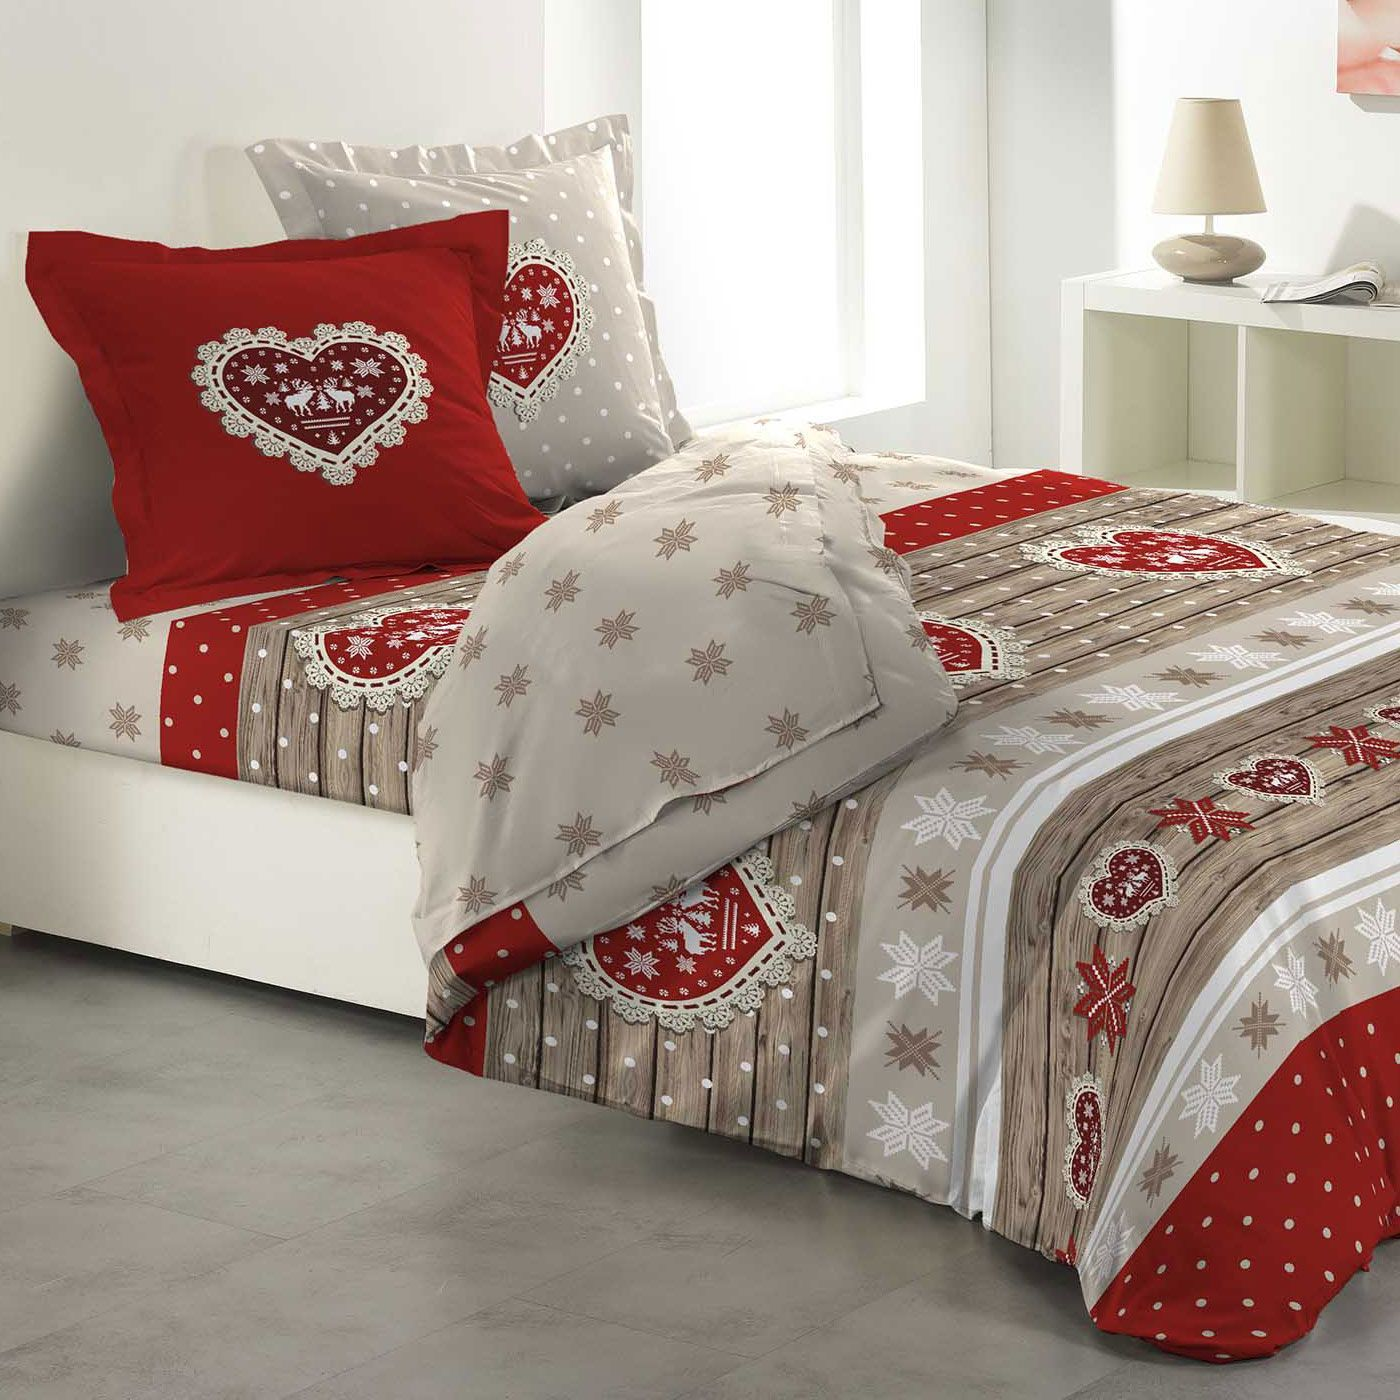 parure de draps 4 pi ces 100 flanelle c ur rouge parure de draps eminza. Black Bedroom Furniture Sets. Home Design Ideas